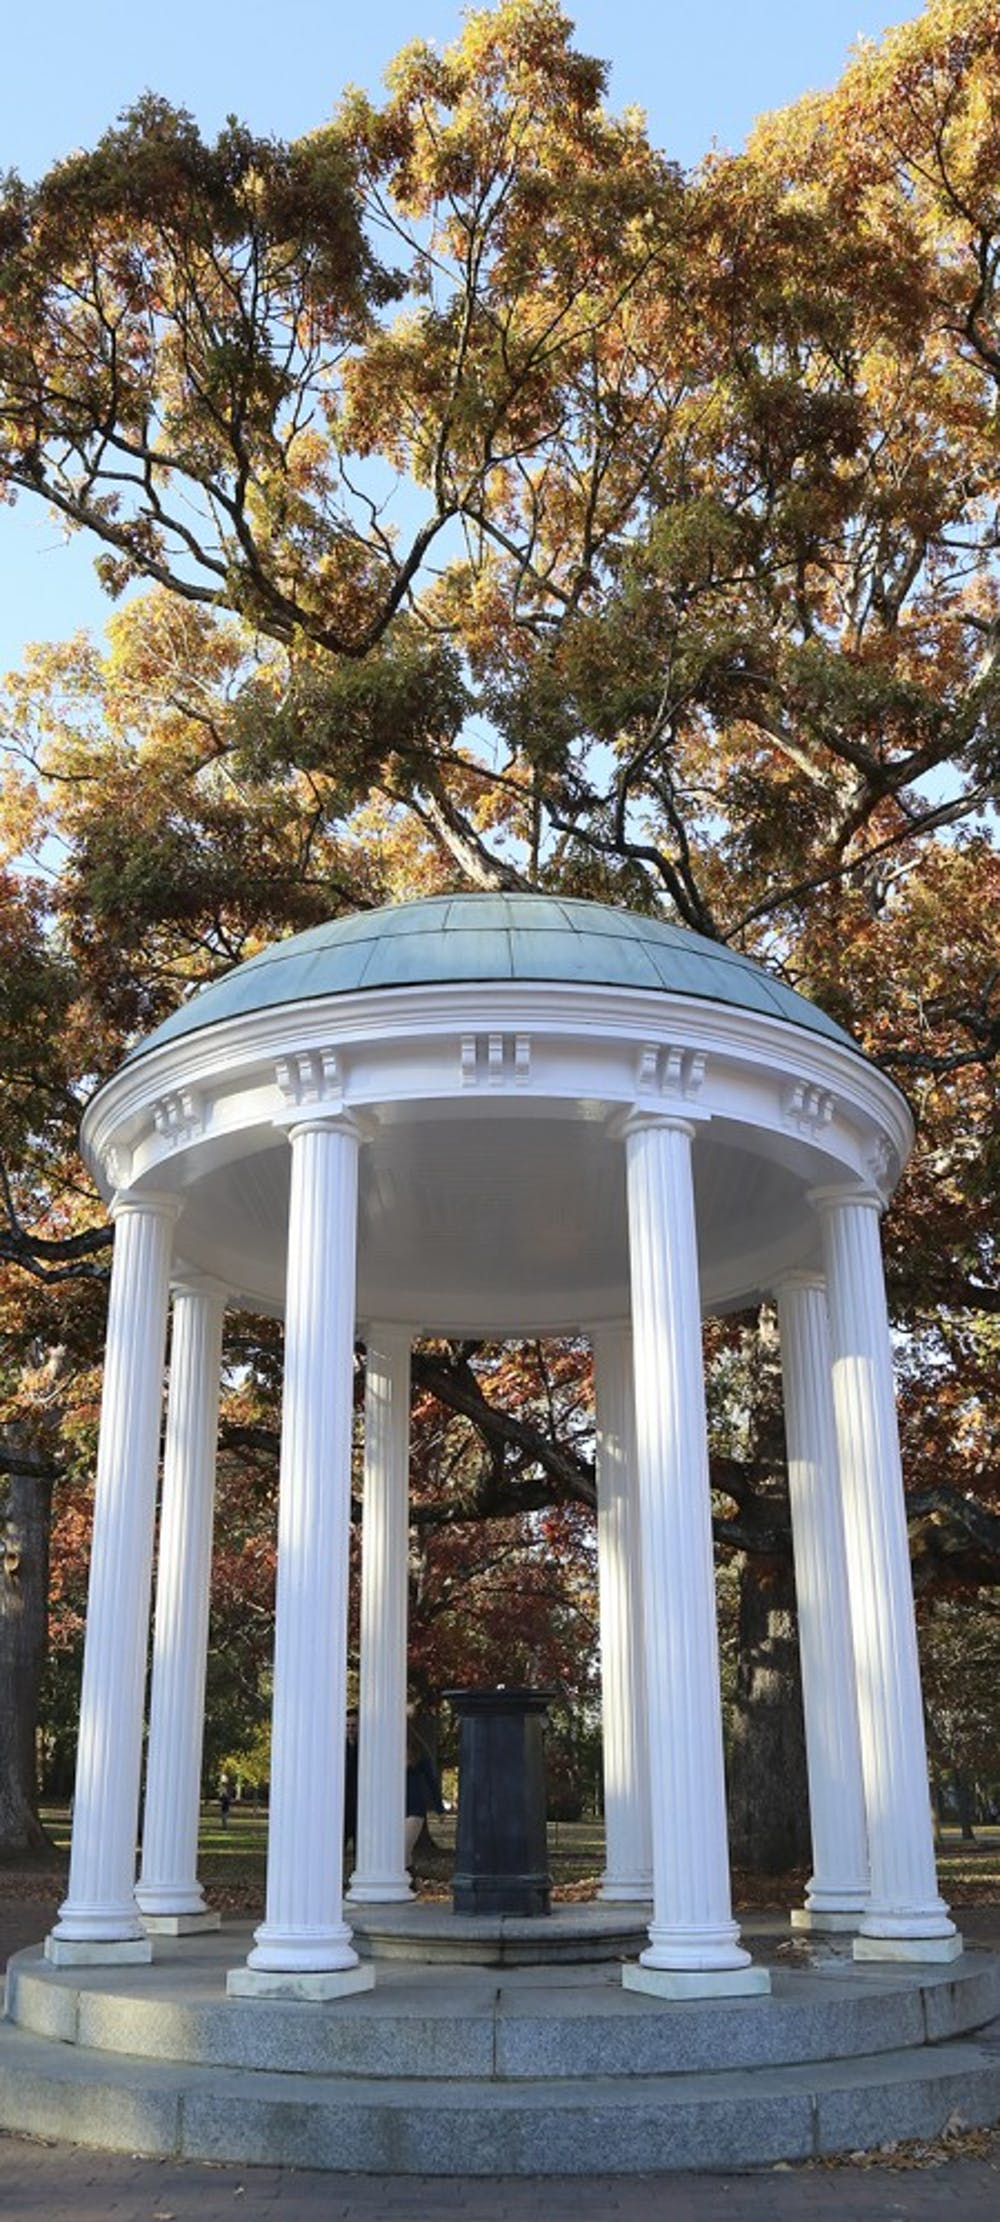 UNC places second nationally in annual college ranking